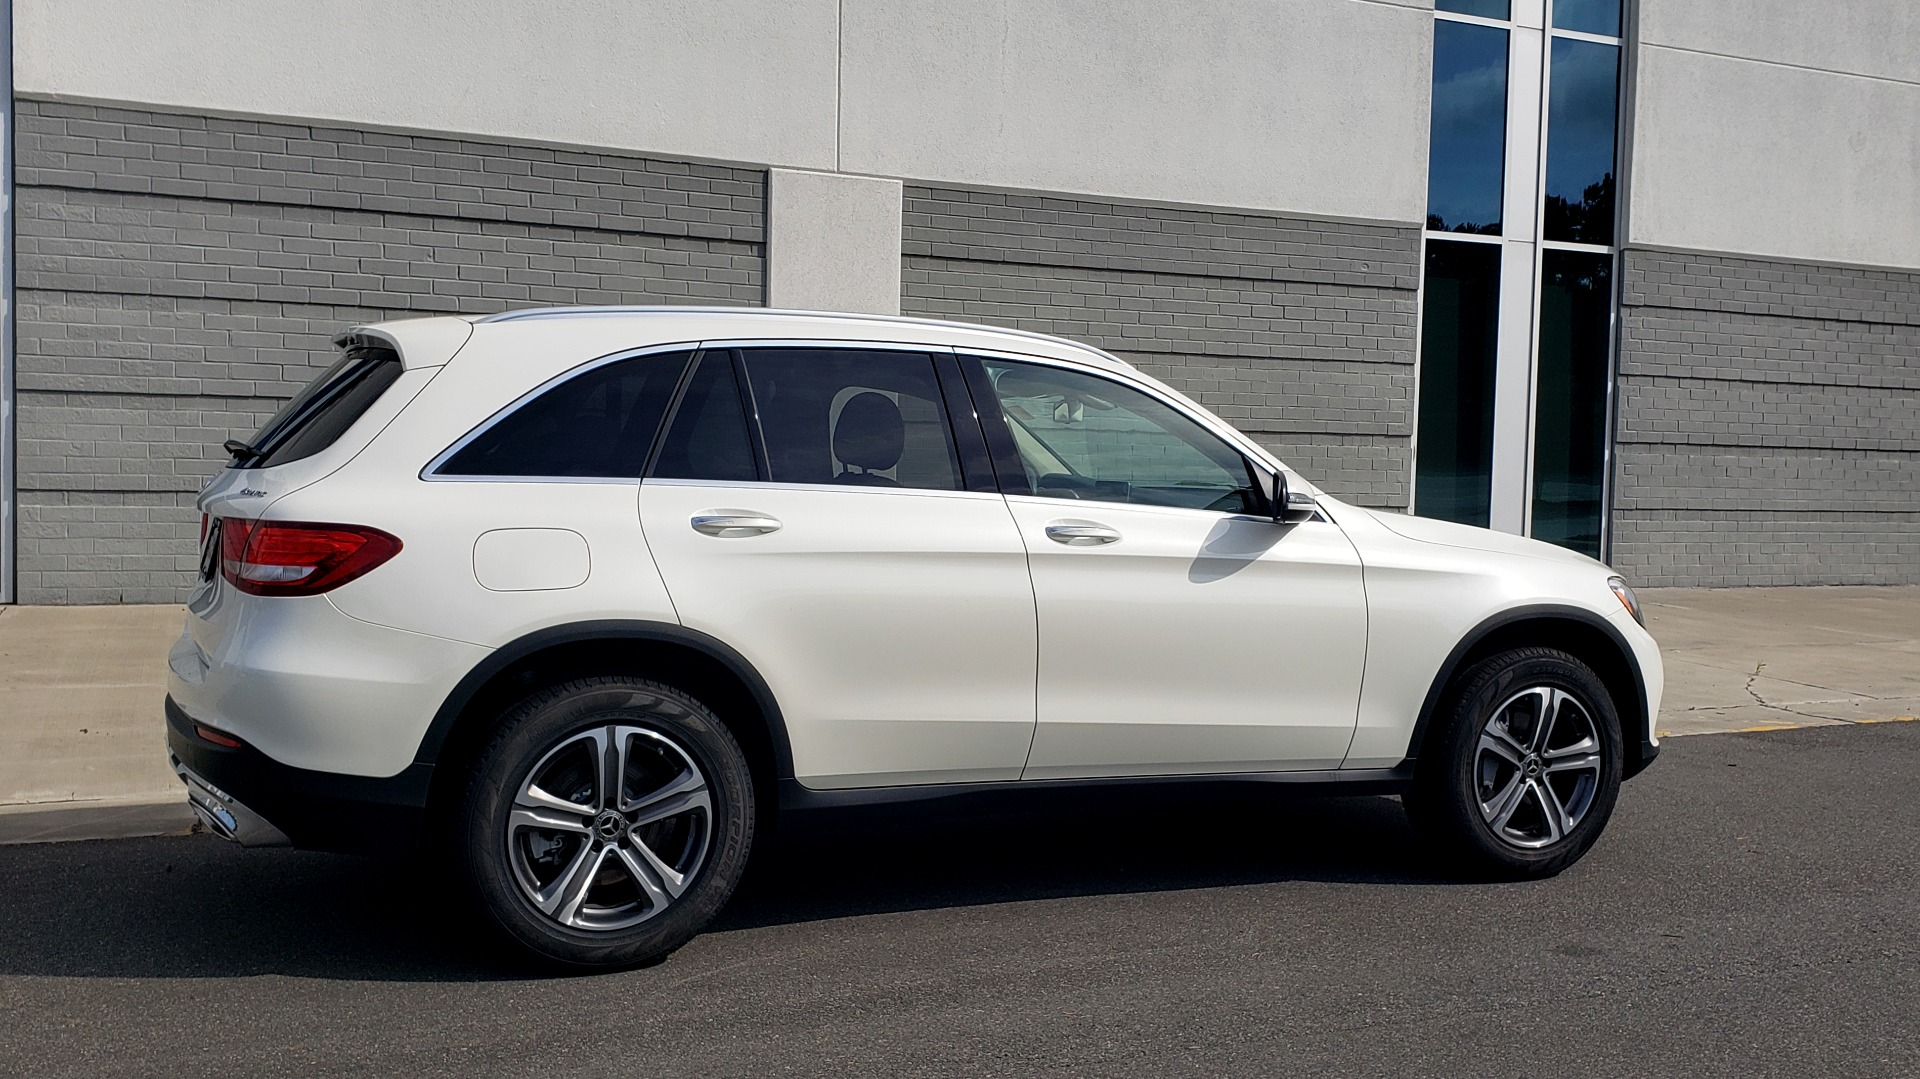 Used 2018 Mercedes-Benz GLC 300 4MATIC / PREM PKG / PANO-ROOF / APPLE / REARVIEW for sale $33,397 at Formula Imports in Charlotte NC 28227 8